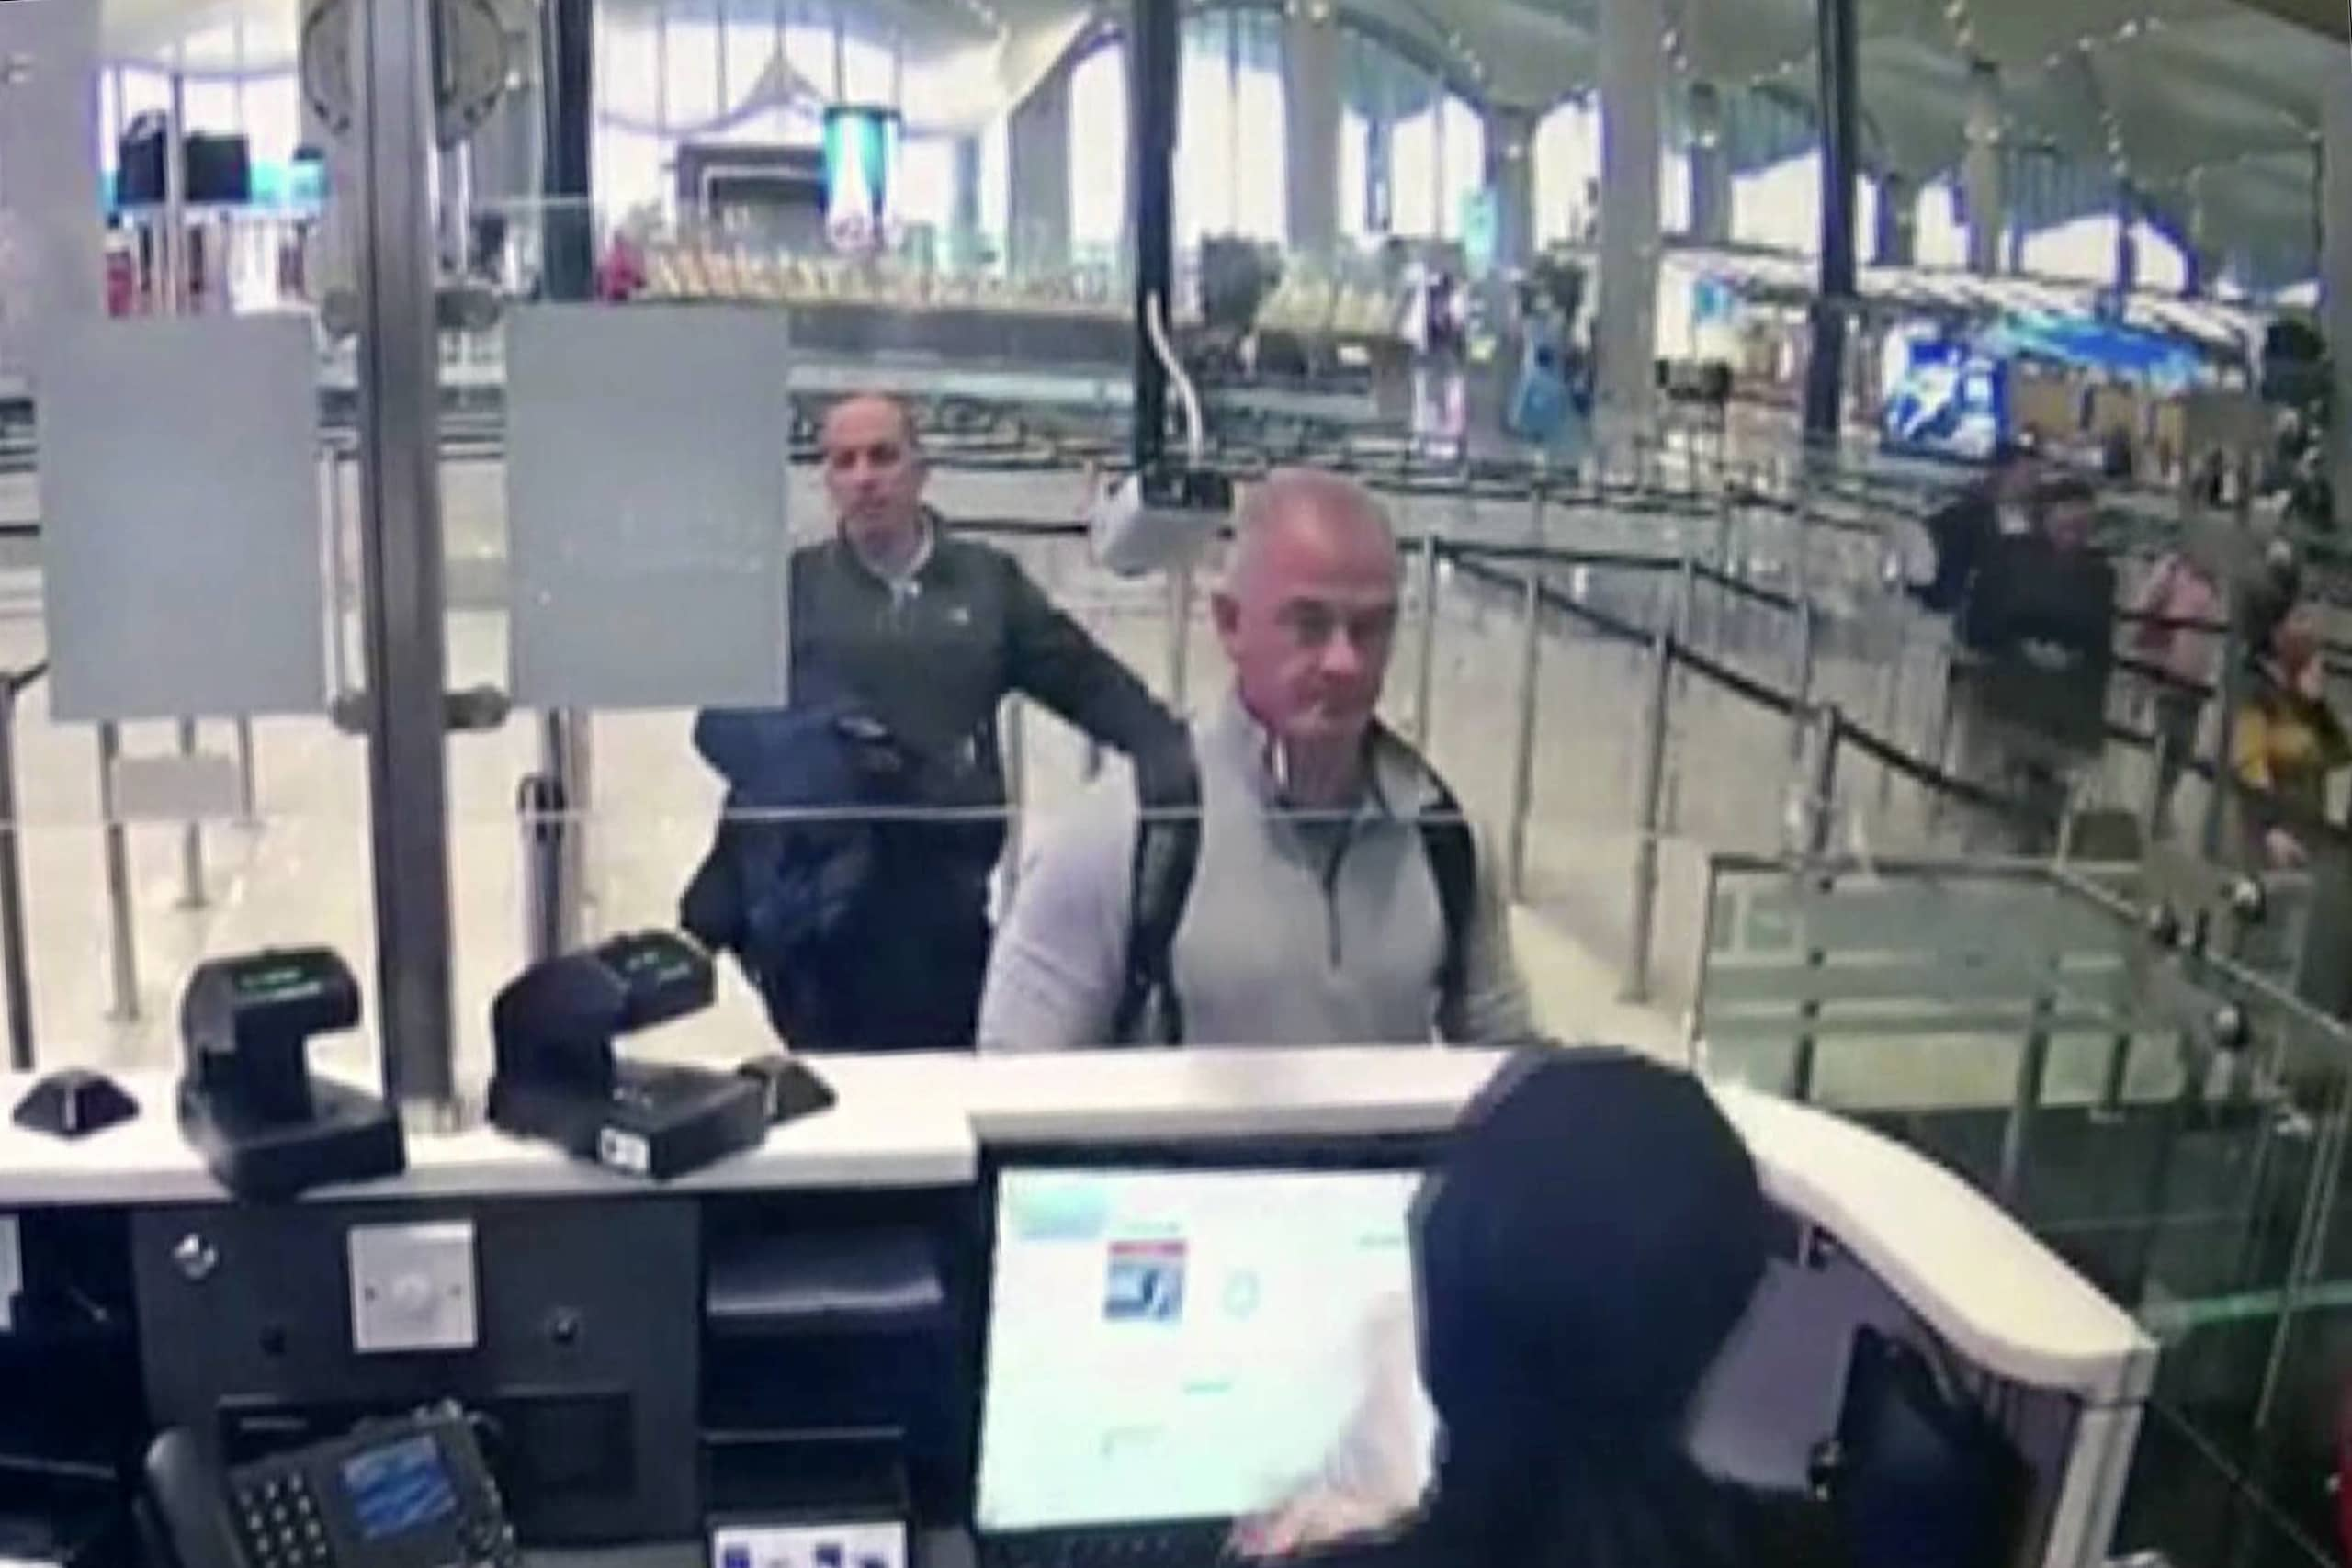 Security camera video shows Michael Taylor, center, and George-Antoine Zayek at passport control at Istanbul Airport on Dec. 30, 2019, as part of the operation to bring Carlos Ghosn to Lebanon.  | DHA / VIA AP